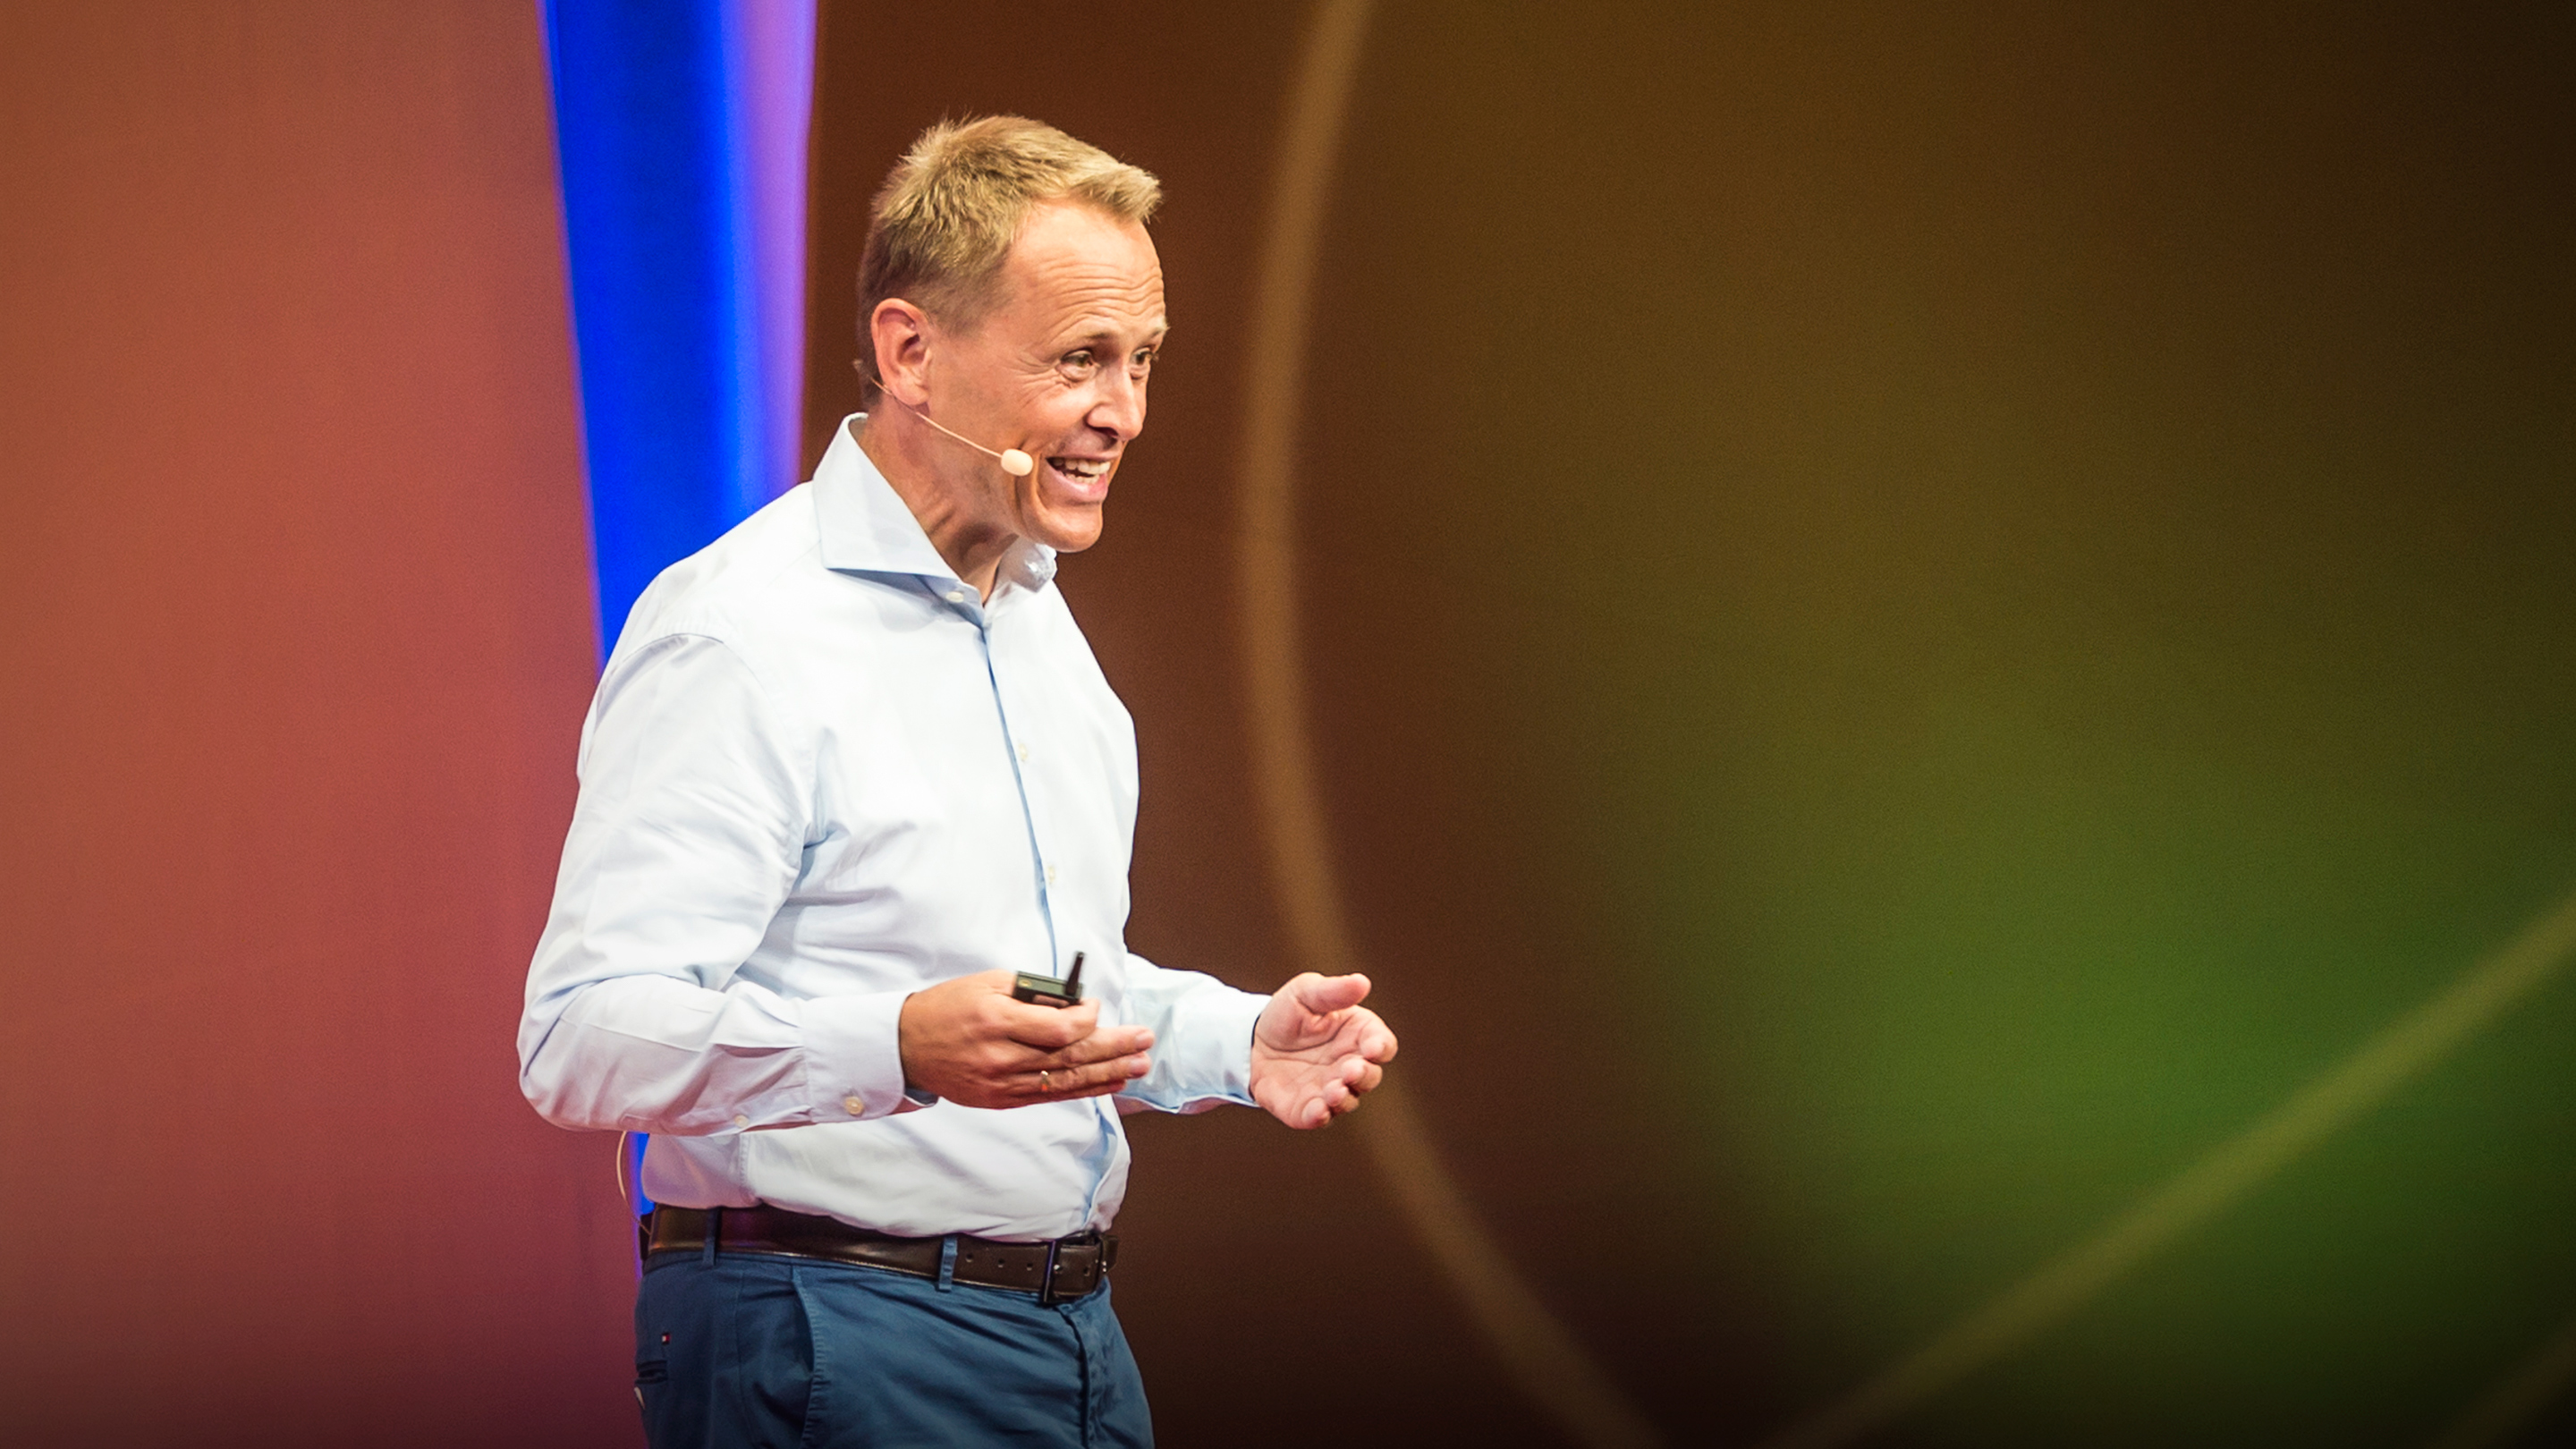 Rainer Strack: The surprising workforce crisis of 2030 — and how to start solving it now thumbnail